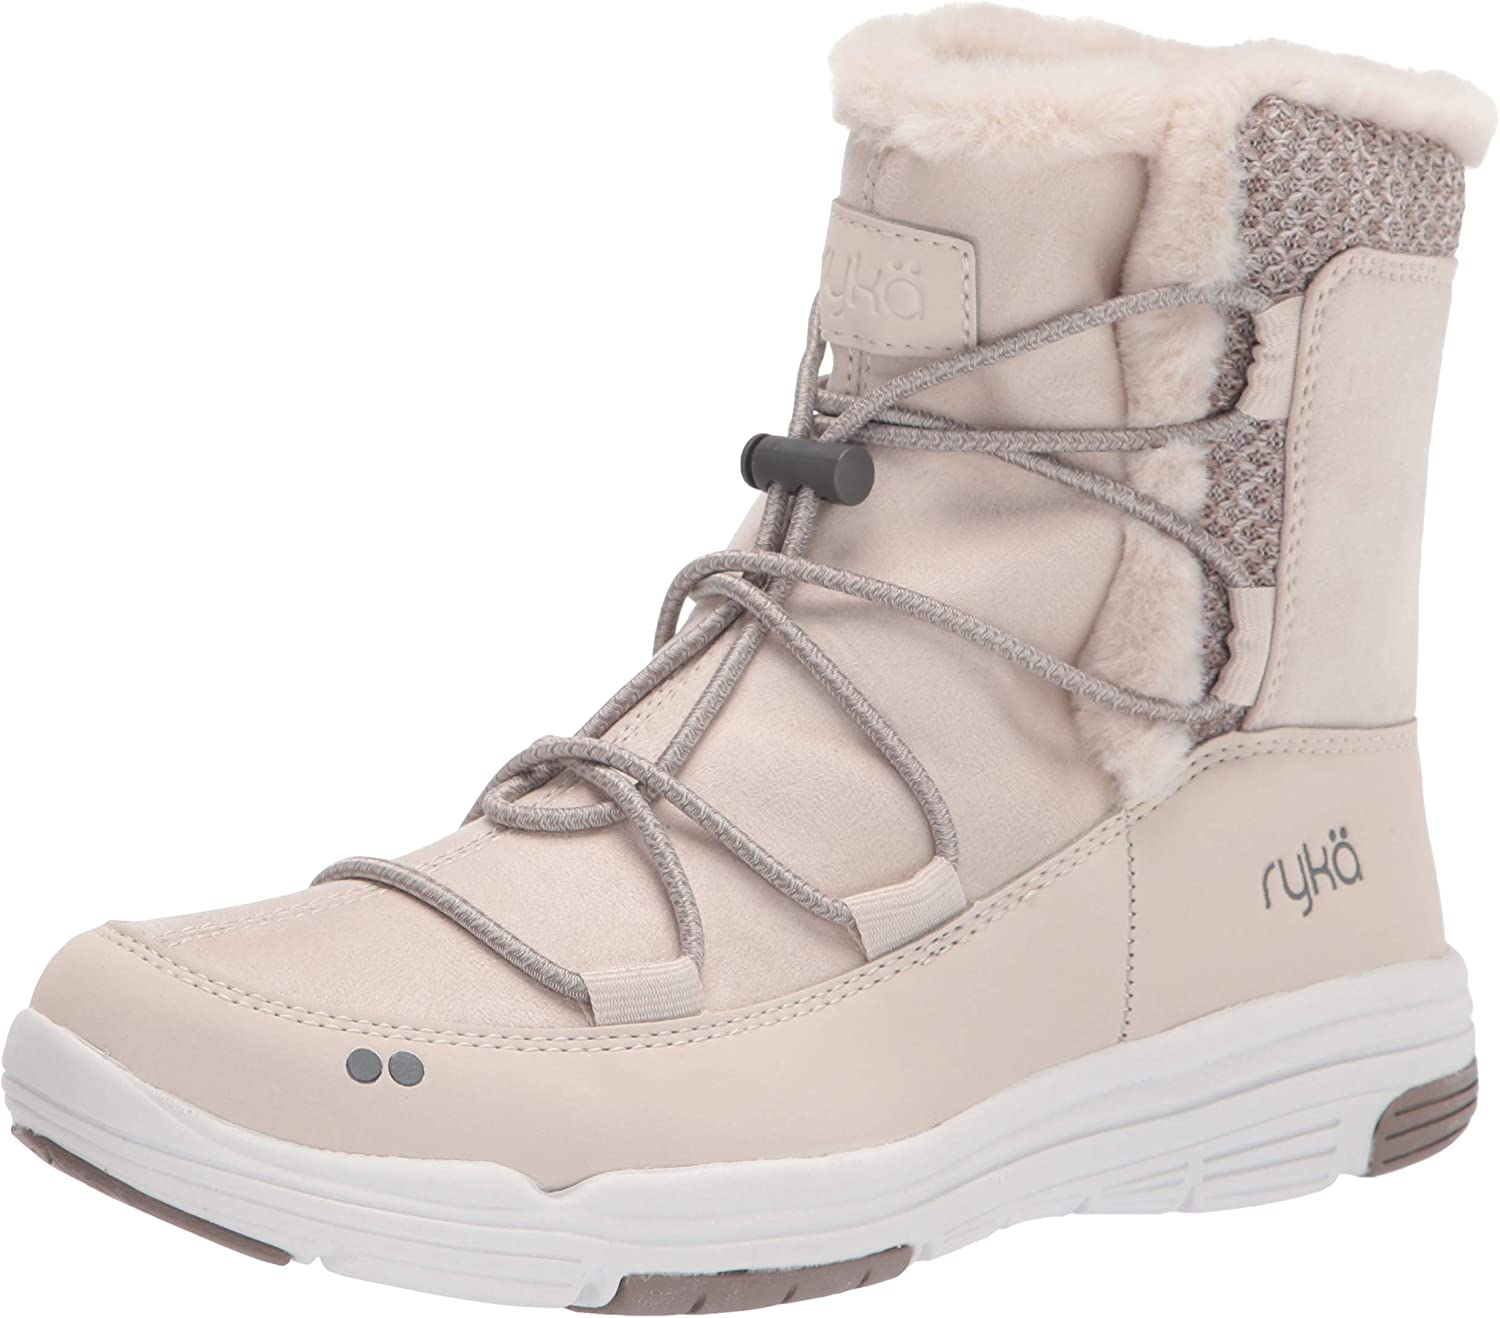 Ryka Women's Inventory cleanup selling sale Briella Max 57% OFF Ankle Boot